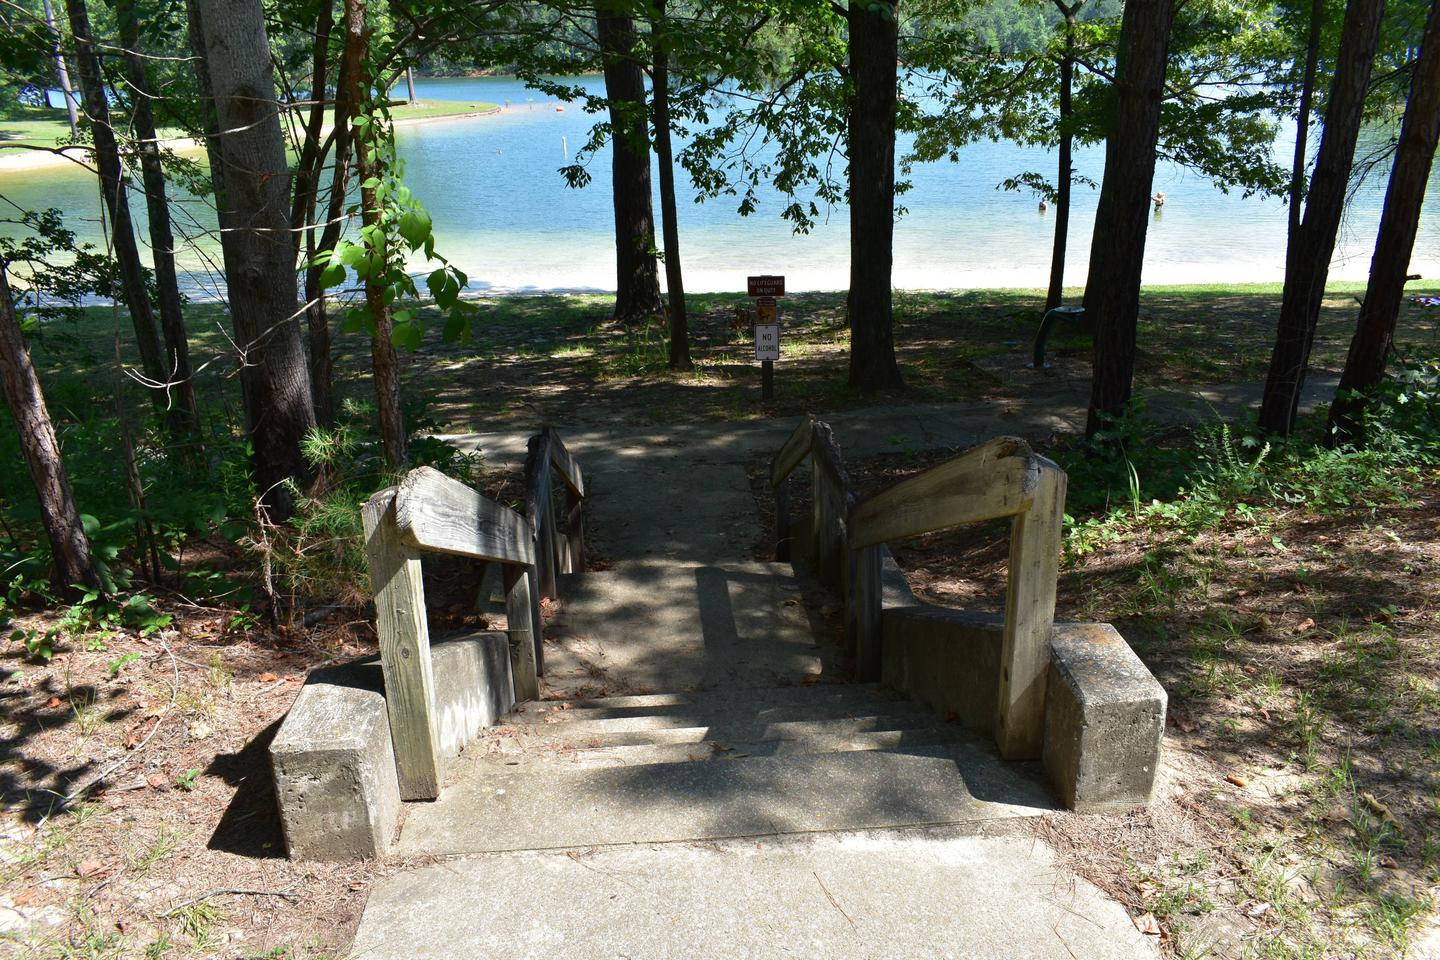 Clear Creek Day Use Area Beach StairsClear Creek Day Use Area Beach Stairs July 10th, 2019